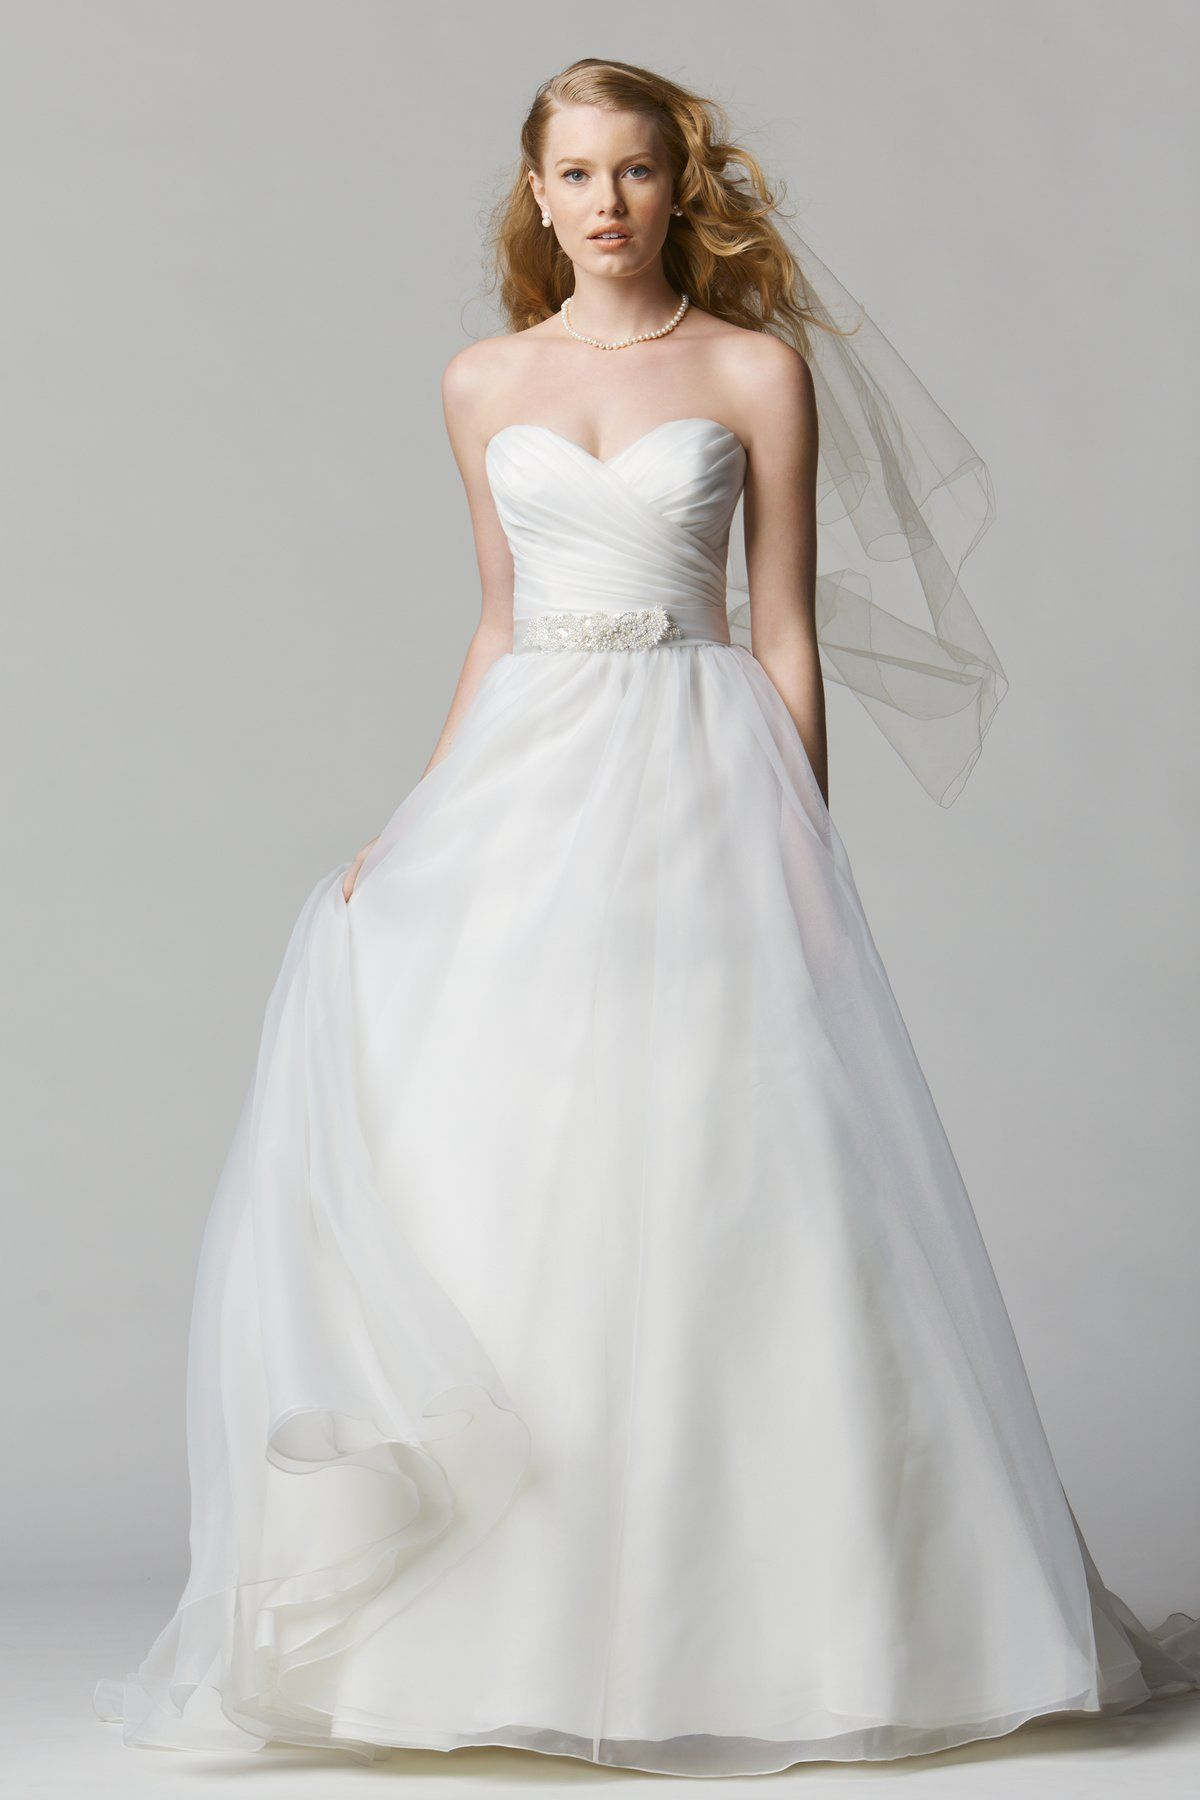 Strapless ball gown wedding dresses  Wtoo Brides Siena Gown  KuitwaardCastrowed  Pinterest  Chapel